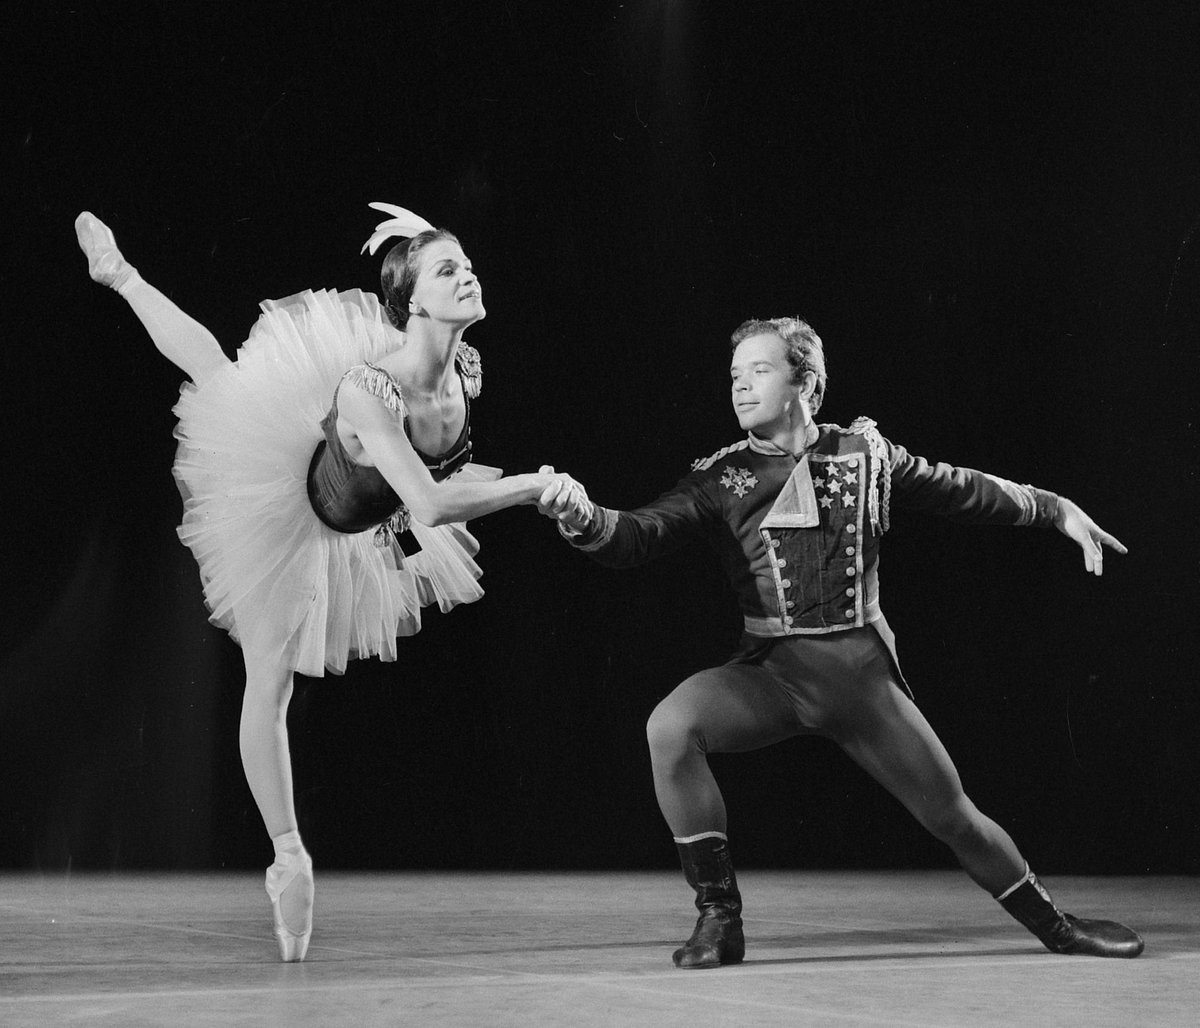 Melissa Hayden, #Canadian dancer known for her work at the @nycballet, was born on this day in 1923. #Balanchine #ballet #PrimaBallerinapic.twitter.com/iBWw6r6BM8